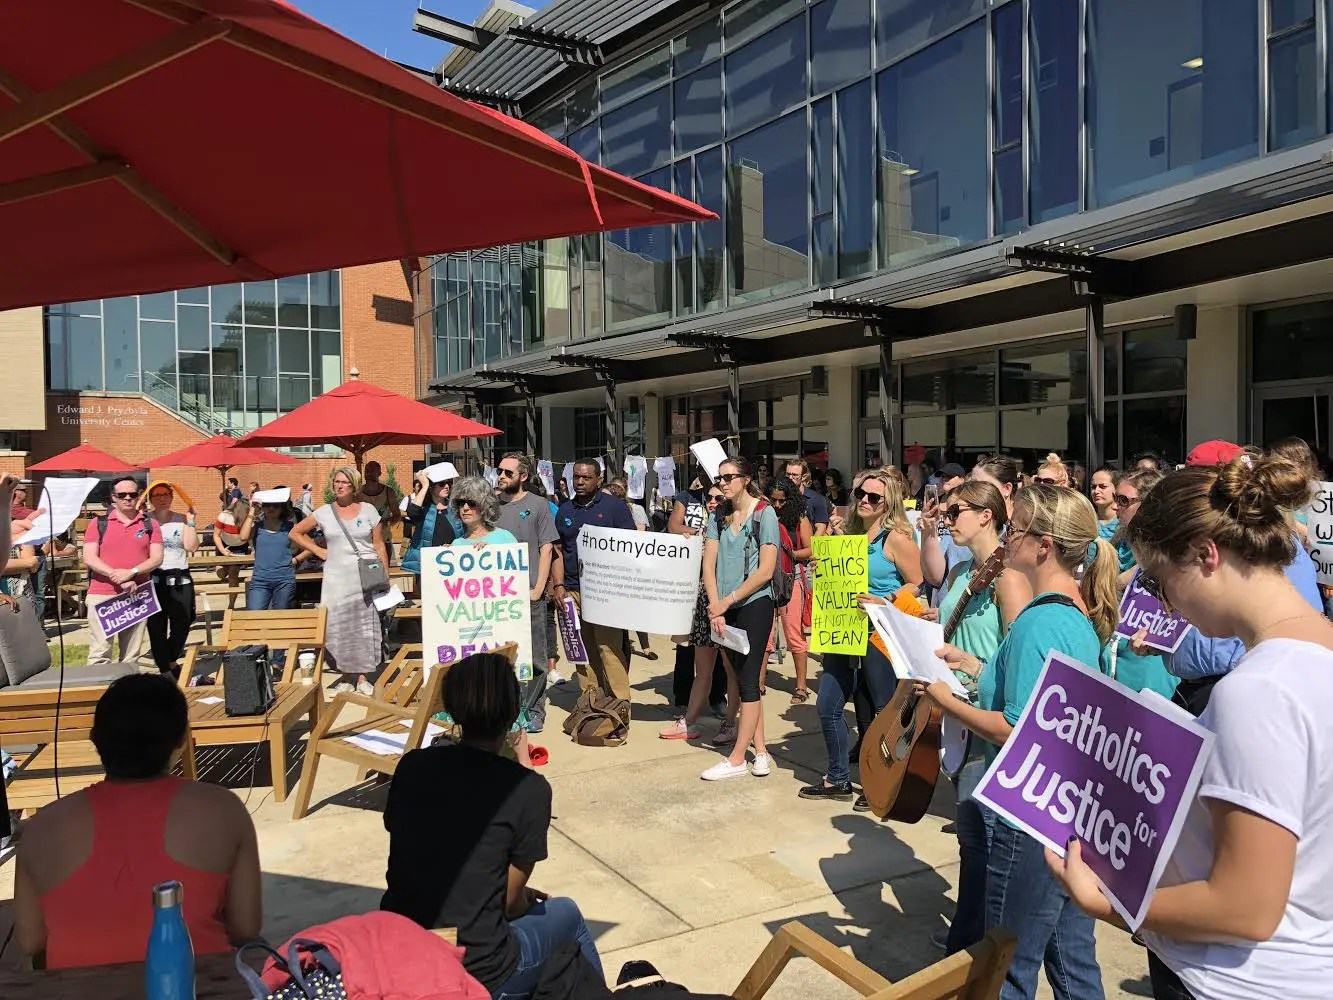 Students and Alumni Call for Social Work Dean's Dismissal